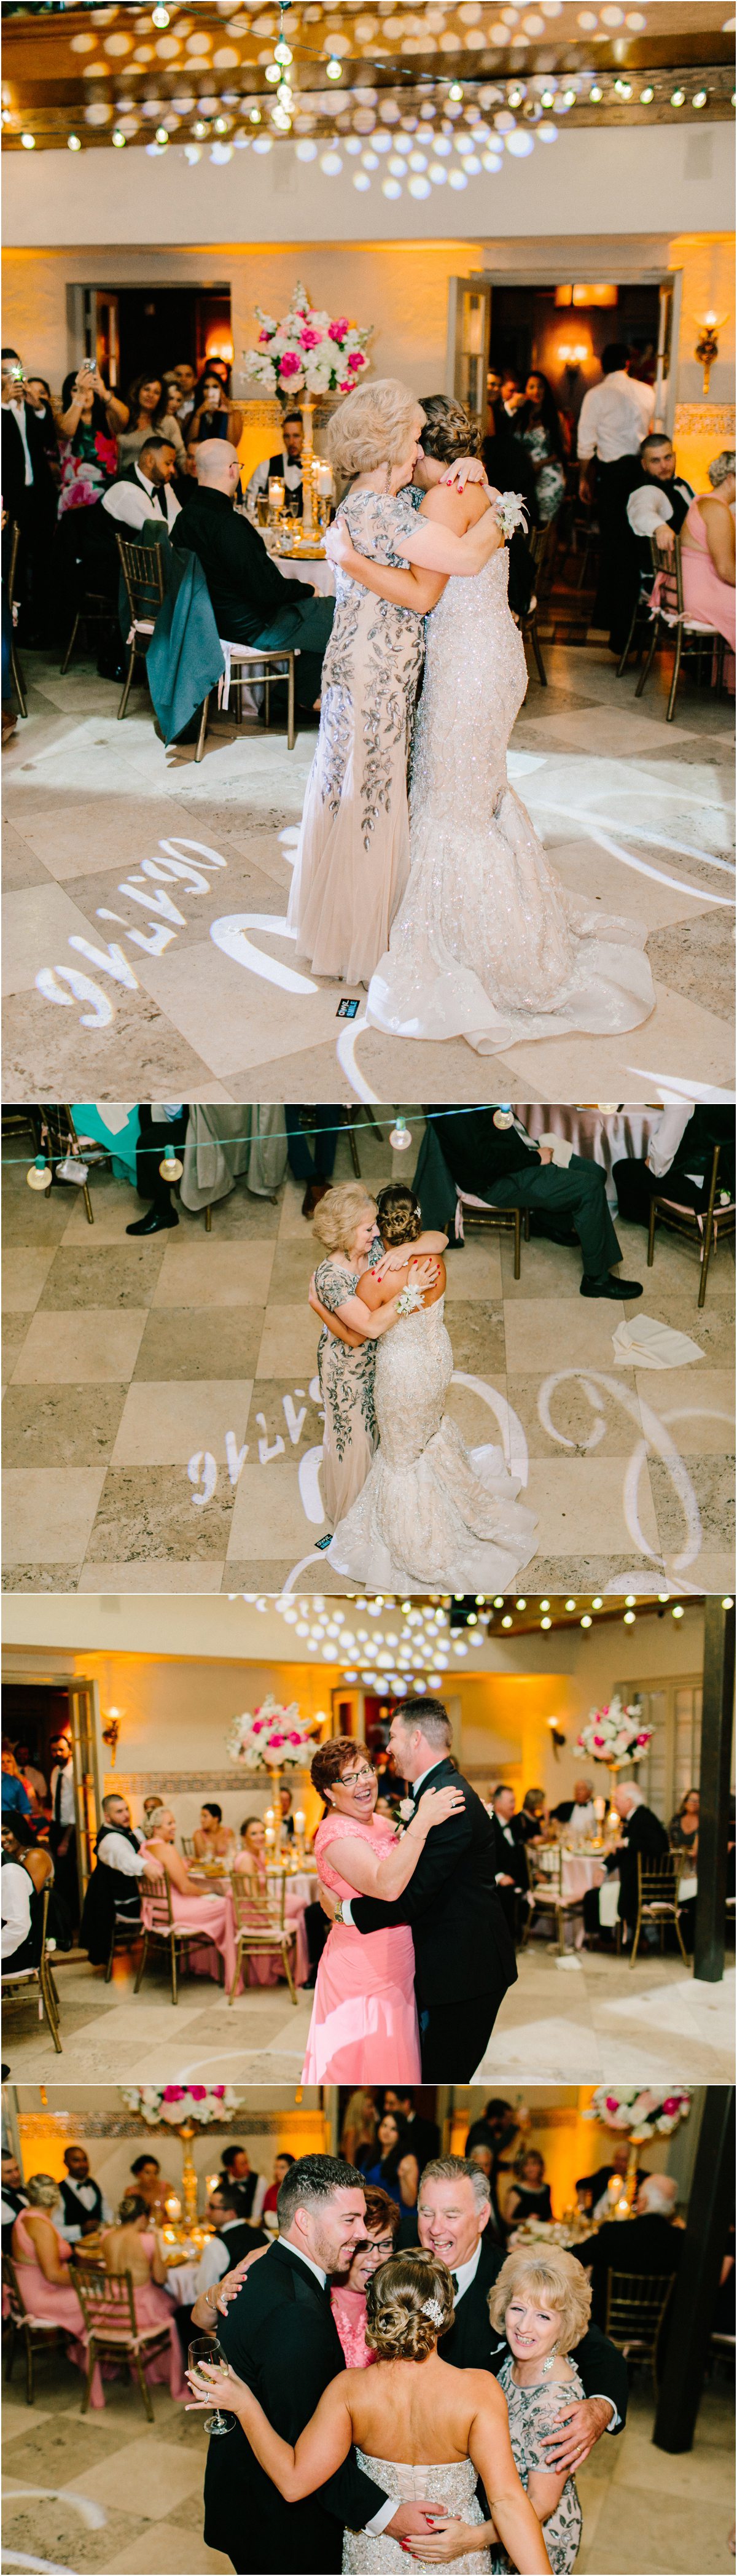 Boca-Raton-Florida-Addison-Wedding-Photography_0044